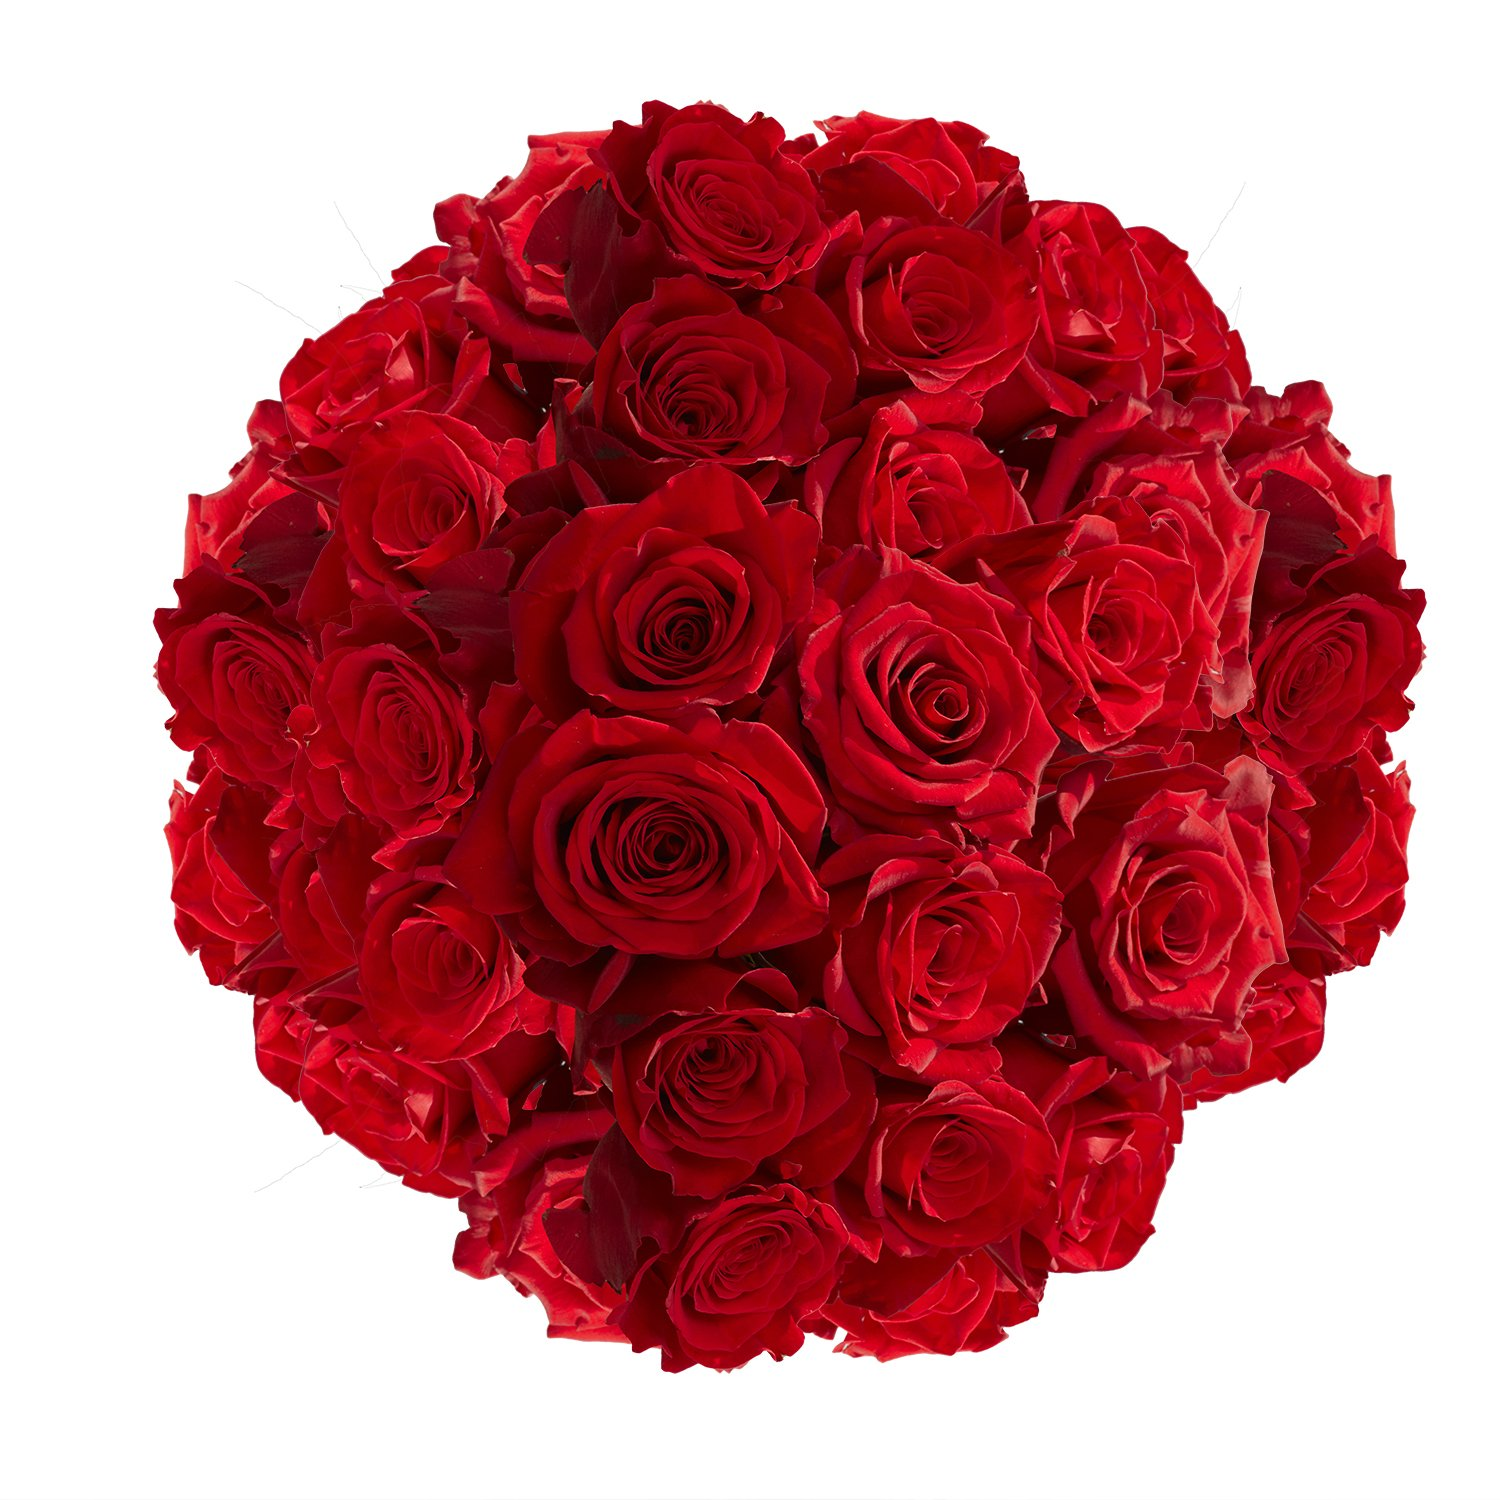 GlobalRose 100 Red Roses- Vibrant and Bright Red Blooms- Fresh Flowers Express Delivery) by GlobalRose (Image #5)